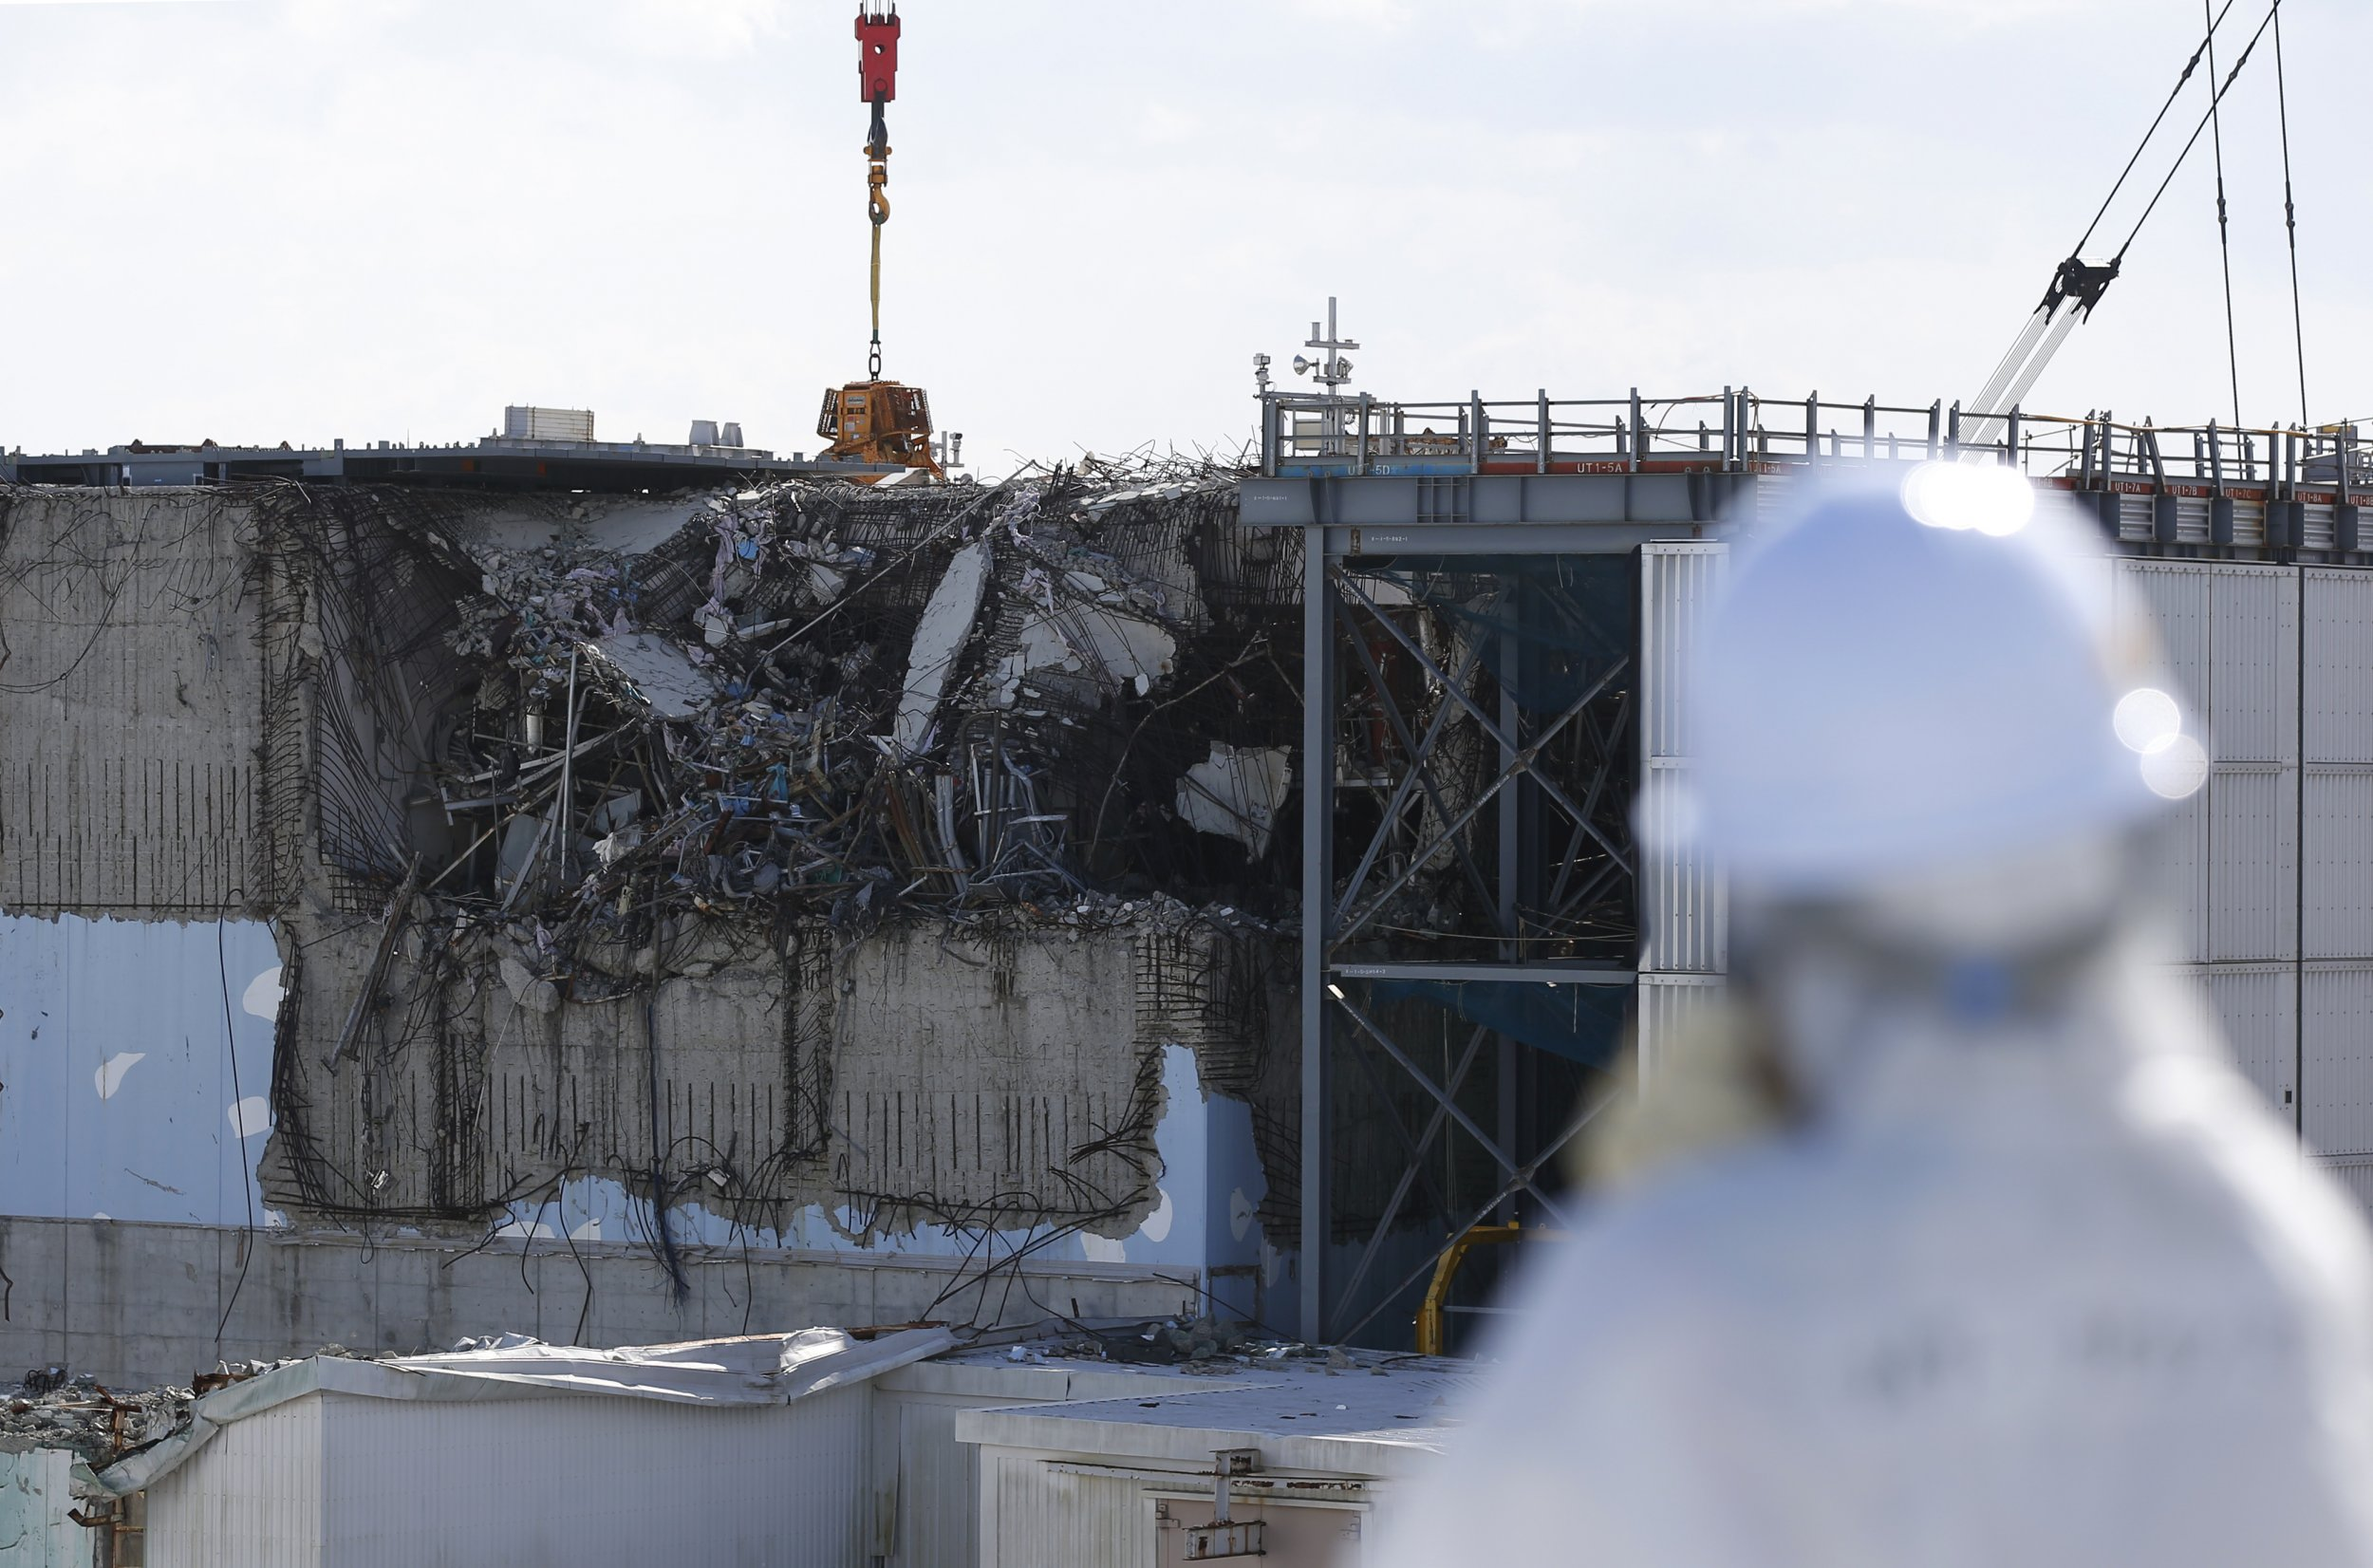 fukushima reactor damage